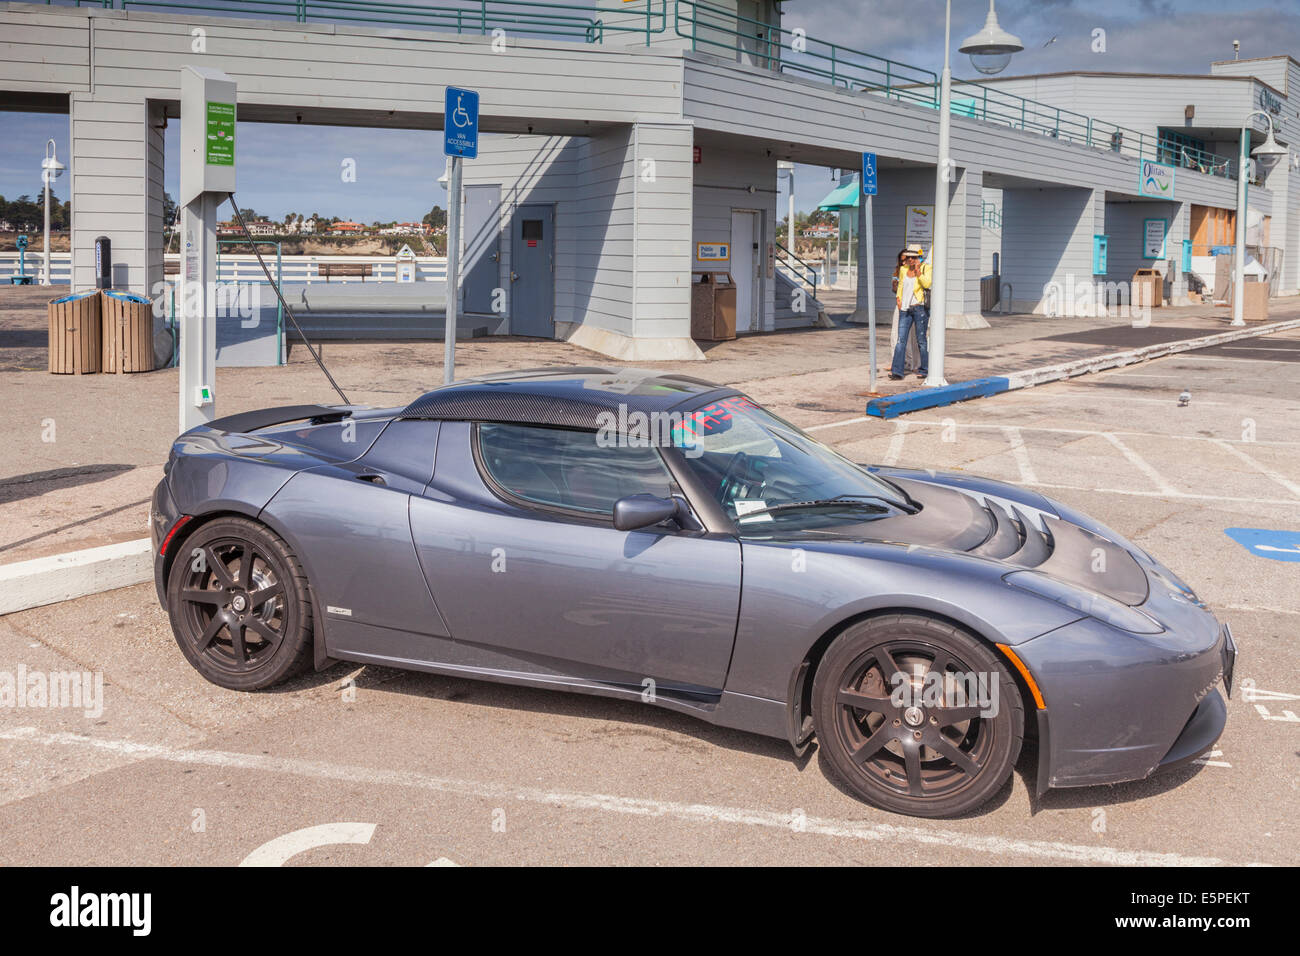 Tesla Roadster plugged in to a public re-charging point on the pier at Santa Cruz, California. - Stock Image